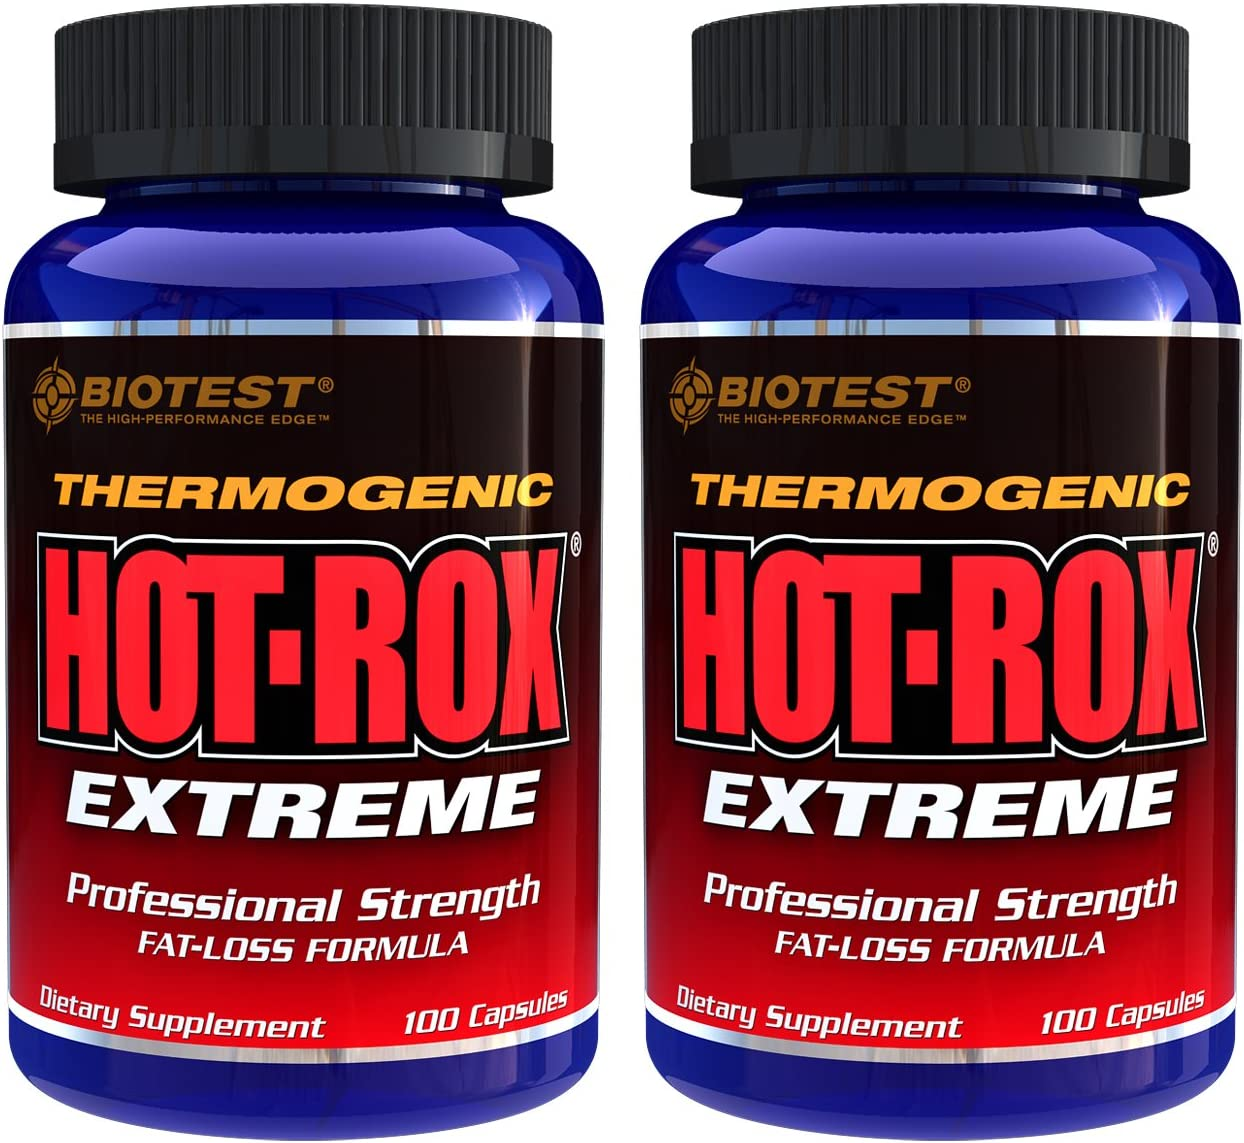 Hot-Rox Extreme, 2 Pack 200 Capsules